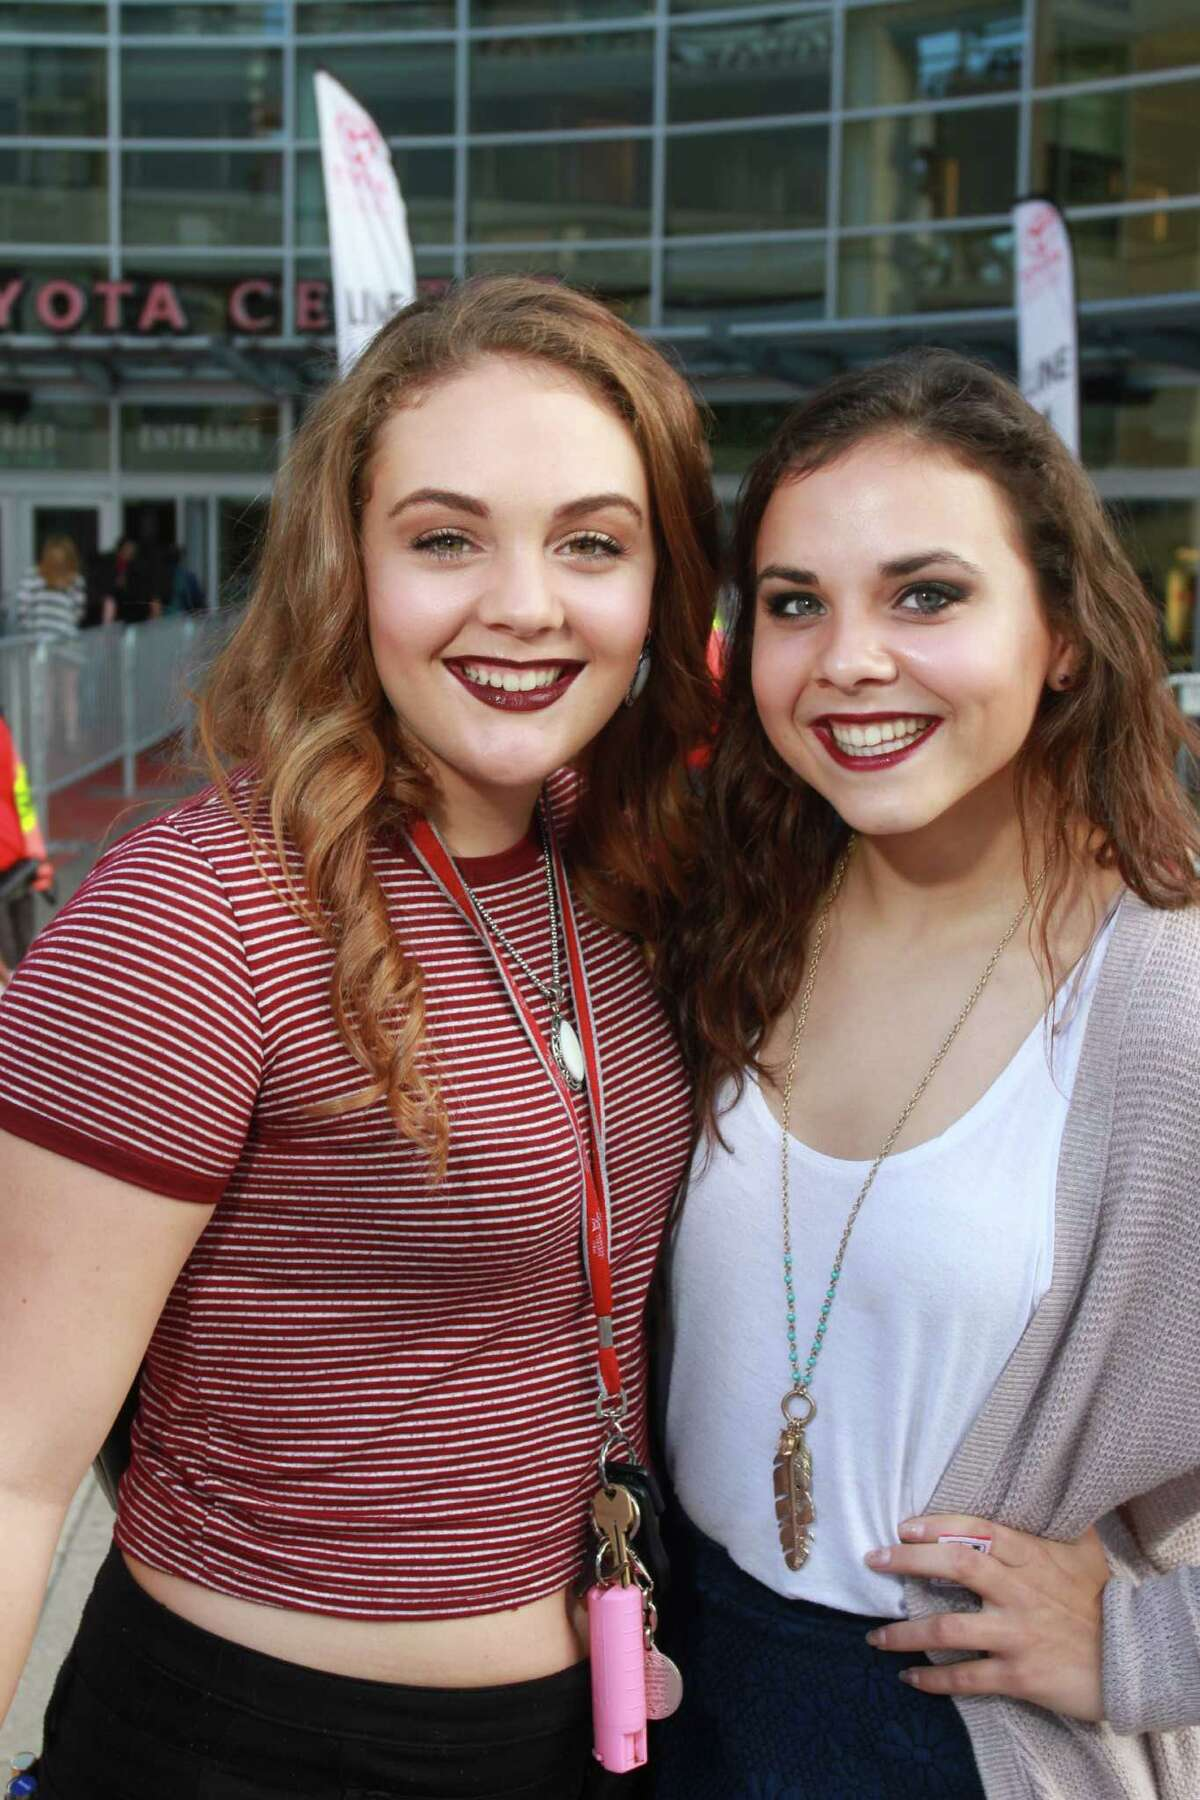 Fans attending the Demi Lovato and Nick Jonas concert at Toyota Center. (For the Chronicle/Gary Fountain, September 9, 2016)